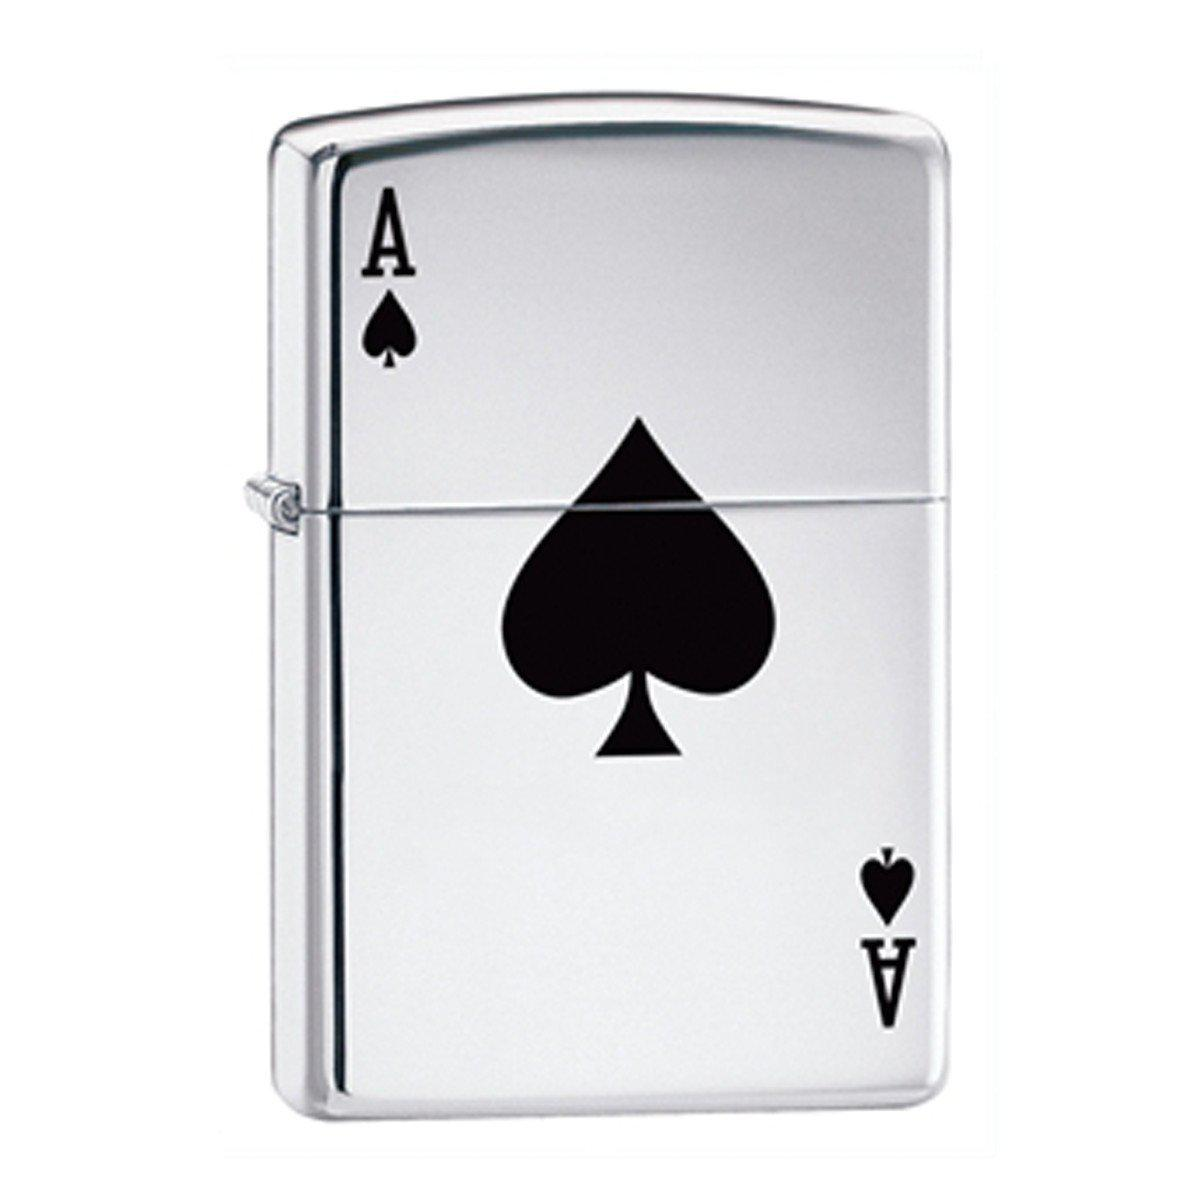 Personalized Aces Zippo Lighter - Chrome